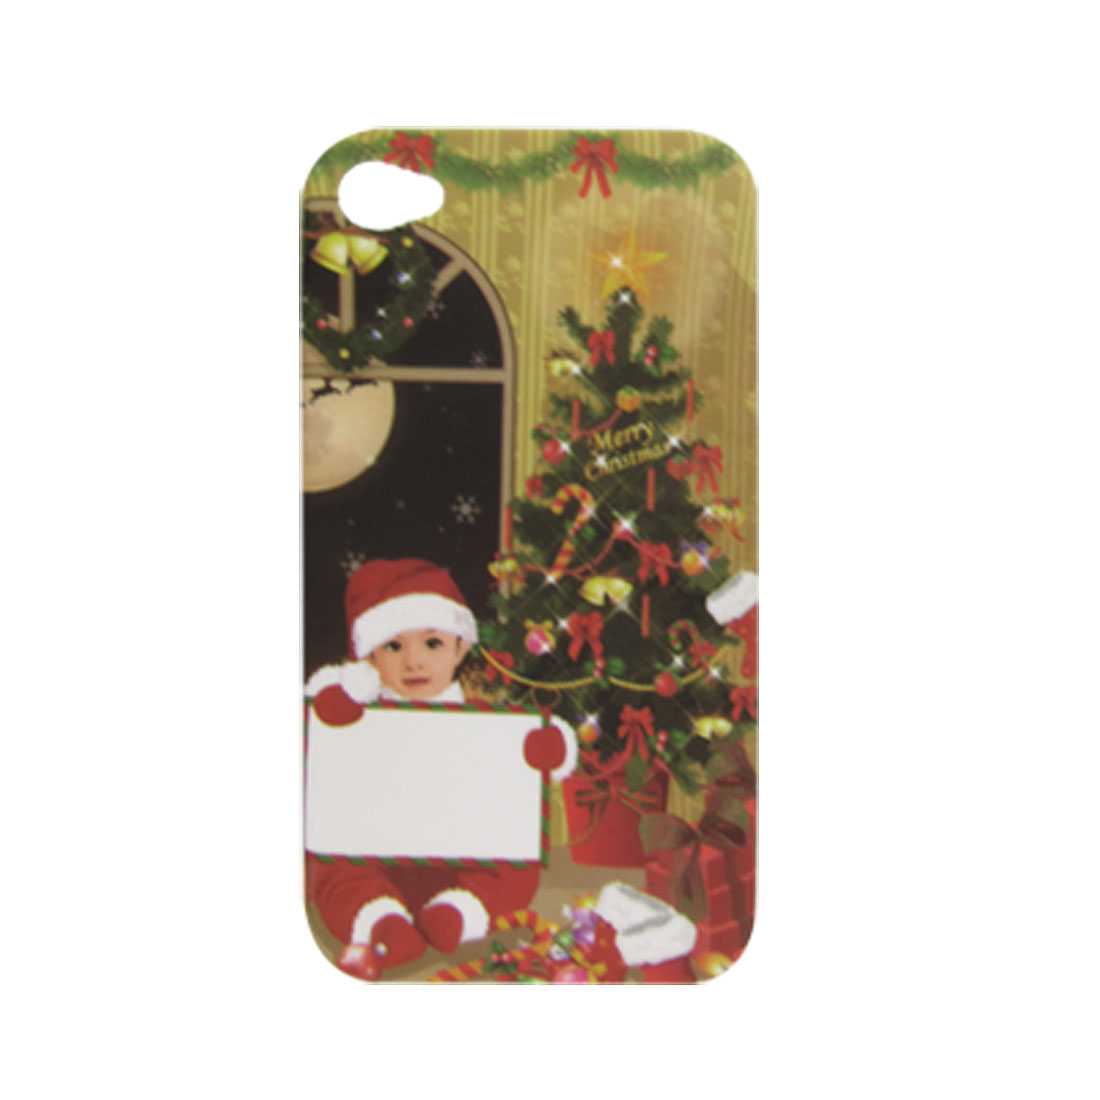 X'mas Tree w Baby Santa Rubberized Plastic Hard Back Case for iPhone 4 4G